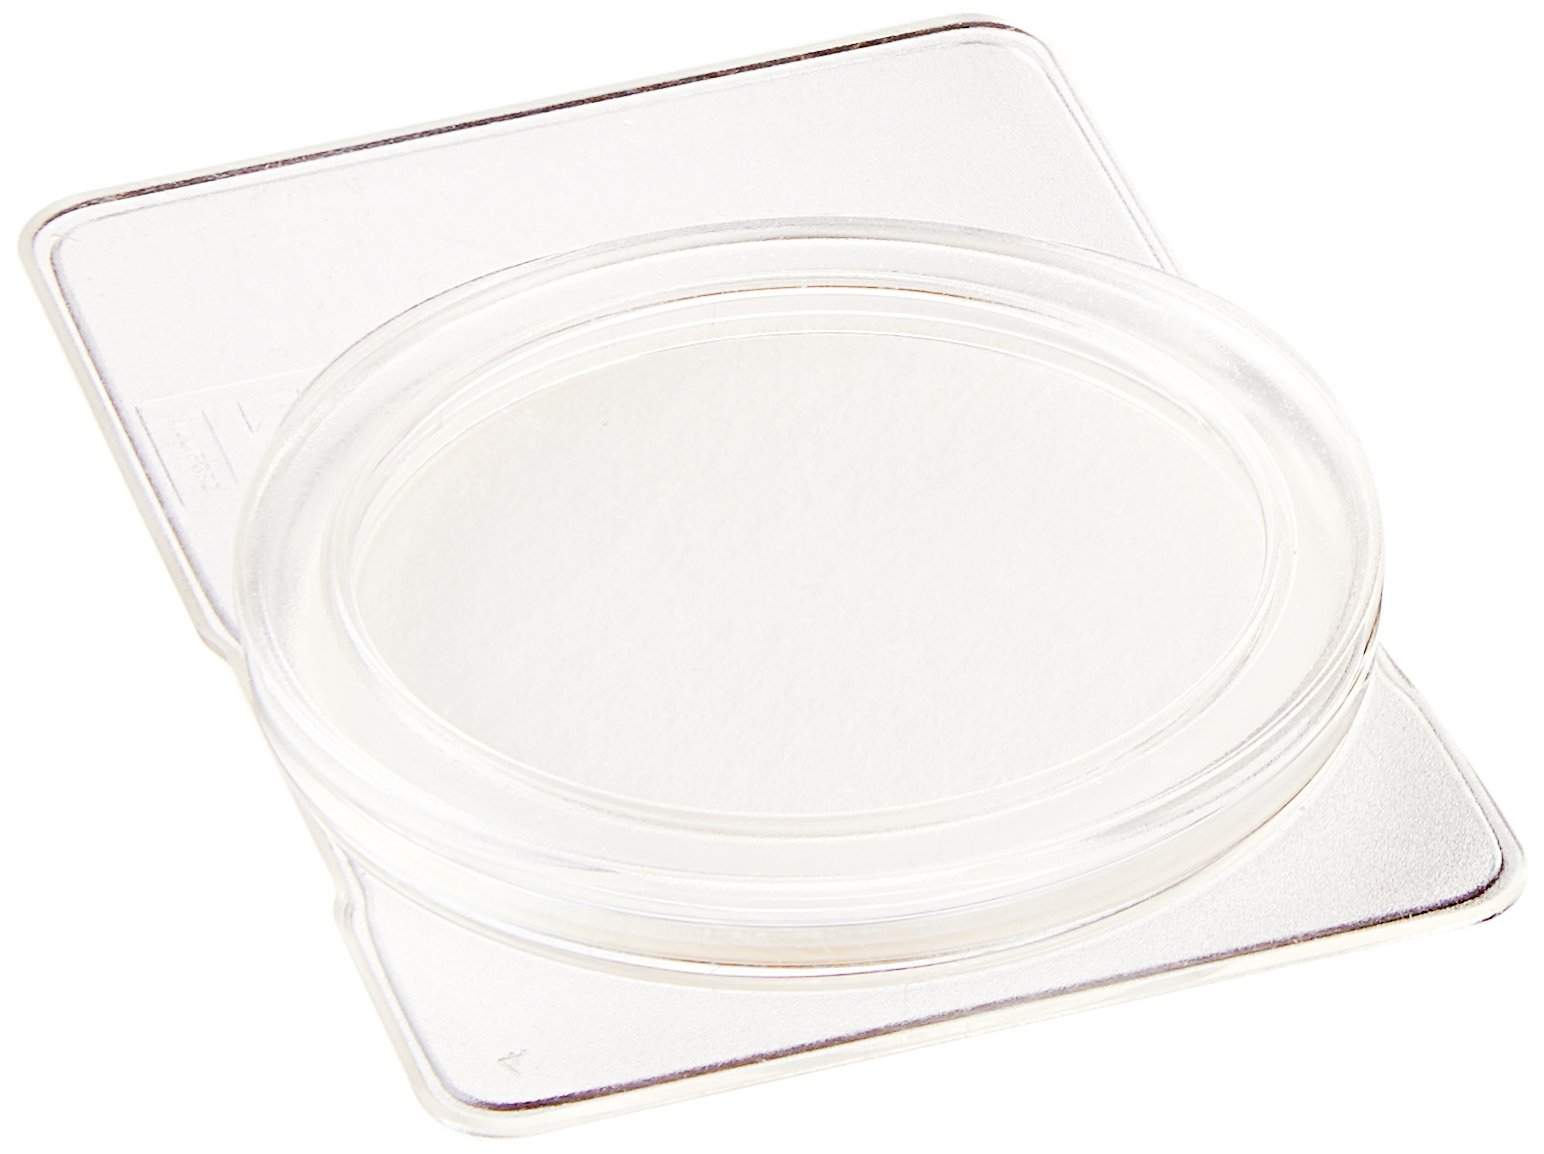 EMD Millipore PetriSlides PDMA04700 Dish Preloaded with Absorbent Pads, Clear, 47mm Diameter (Pack of 100)